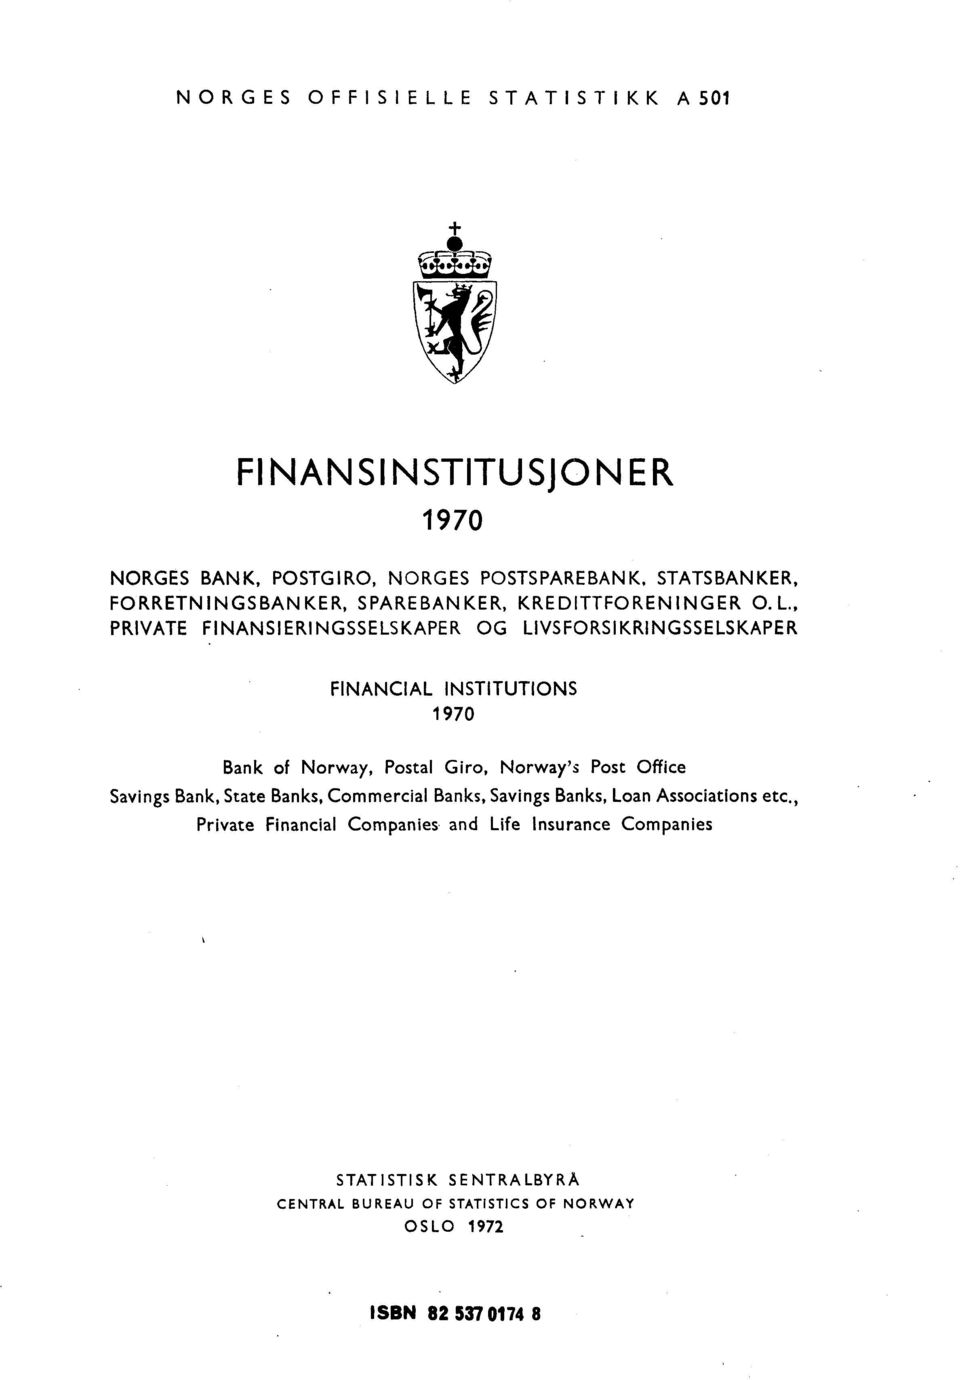 , PRIVATE FINANSIERINGSSELSKAPER OG LIVSFORSIKRINGSSELSKAPER FINANCIAL INSTITUTIONS 1 970 Bank of Norway, Postal Giro, Norway's Post